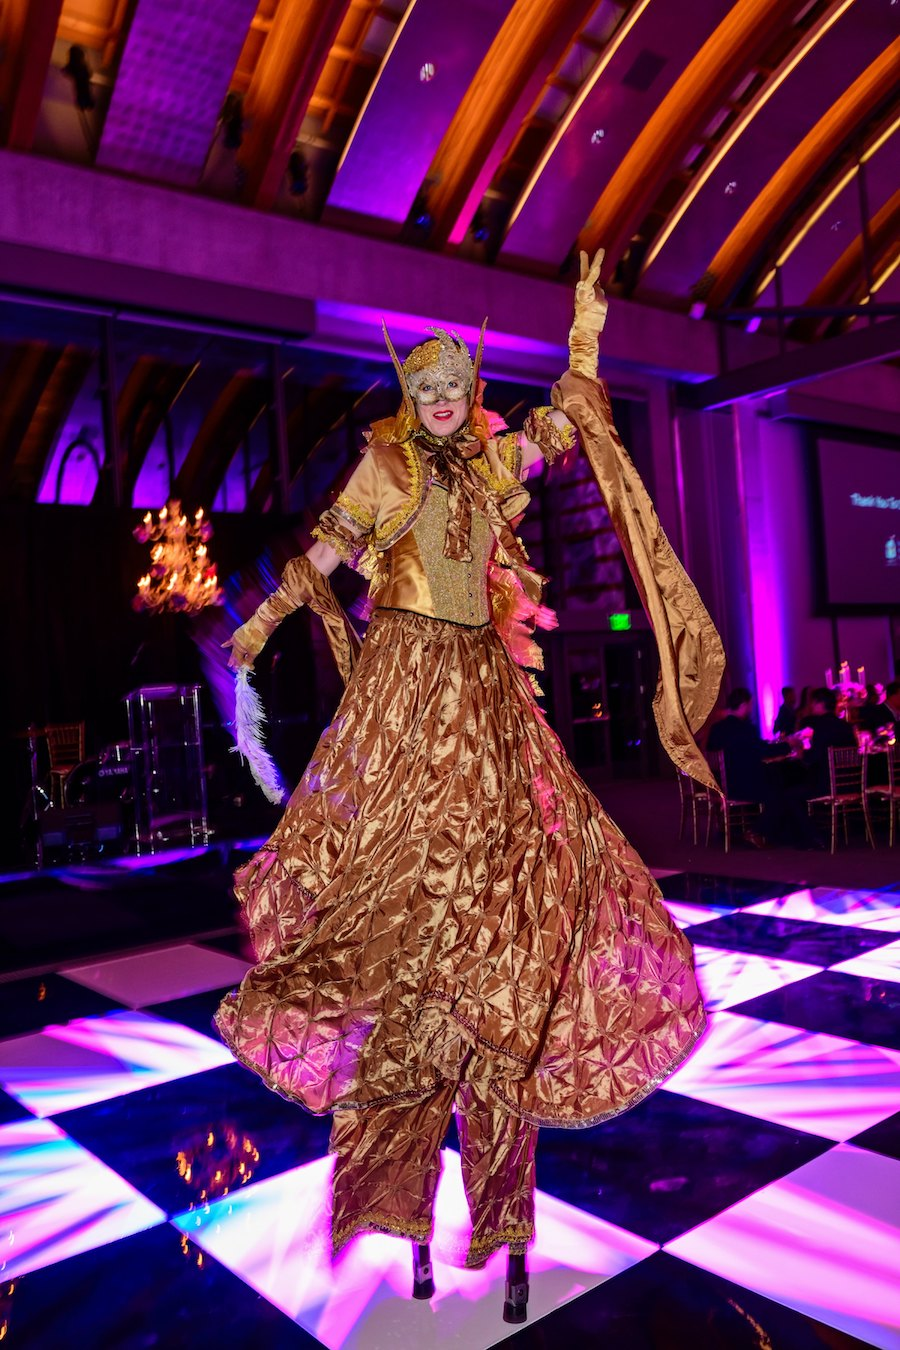 Los Angeles Ronald McDonald Charities of Southern California, Nicole Hirsty, Cobalt Events, Joshua Bobrov, The Lighter Side LA, WOVA, World of Video and Audio, Chef Jamie Gwen, Skirball Cultural Center, Palace Party Rental, Debois Entertainment, DJ Viscious Lee, Bling Divas Entertainment